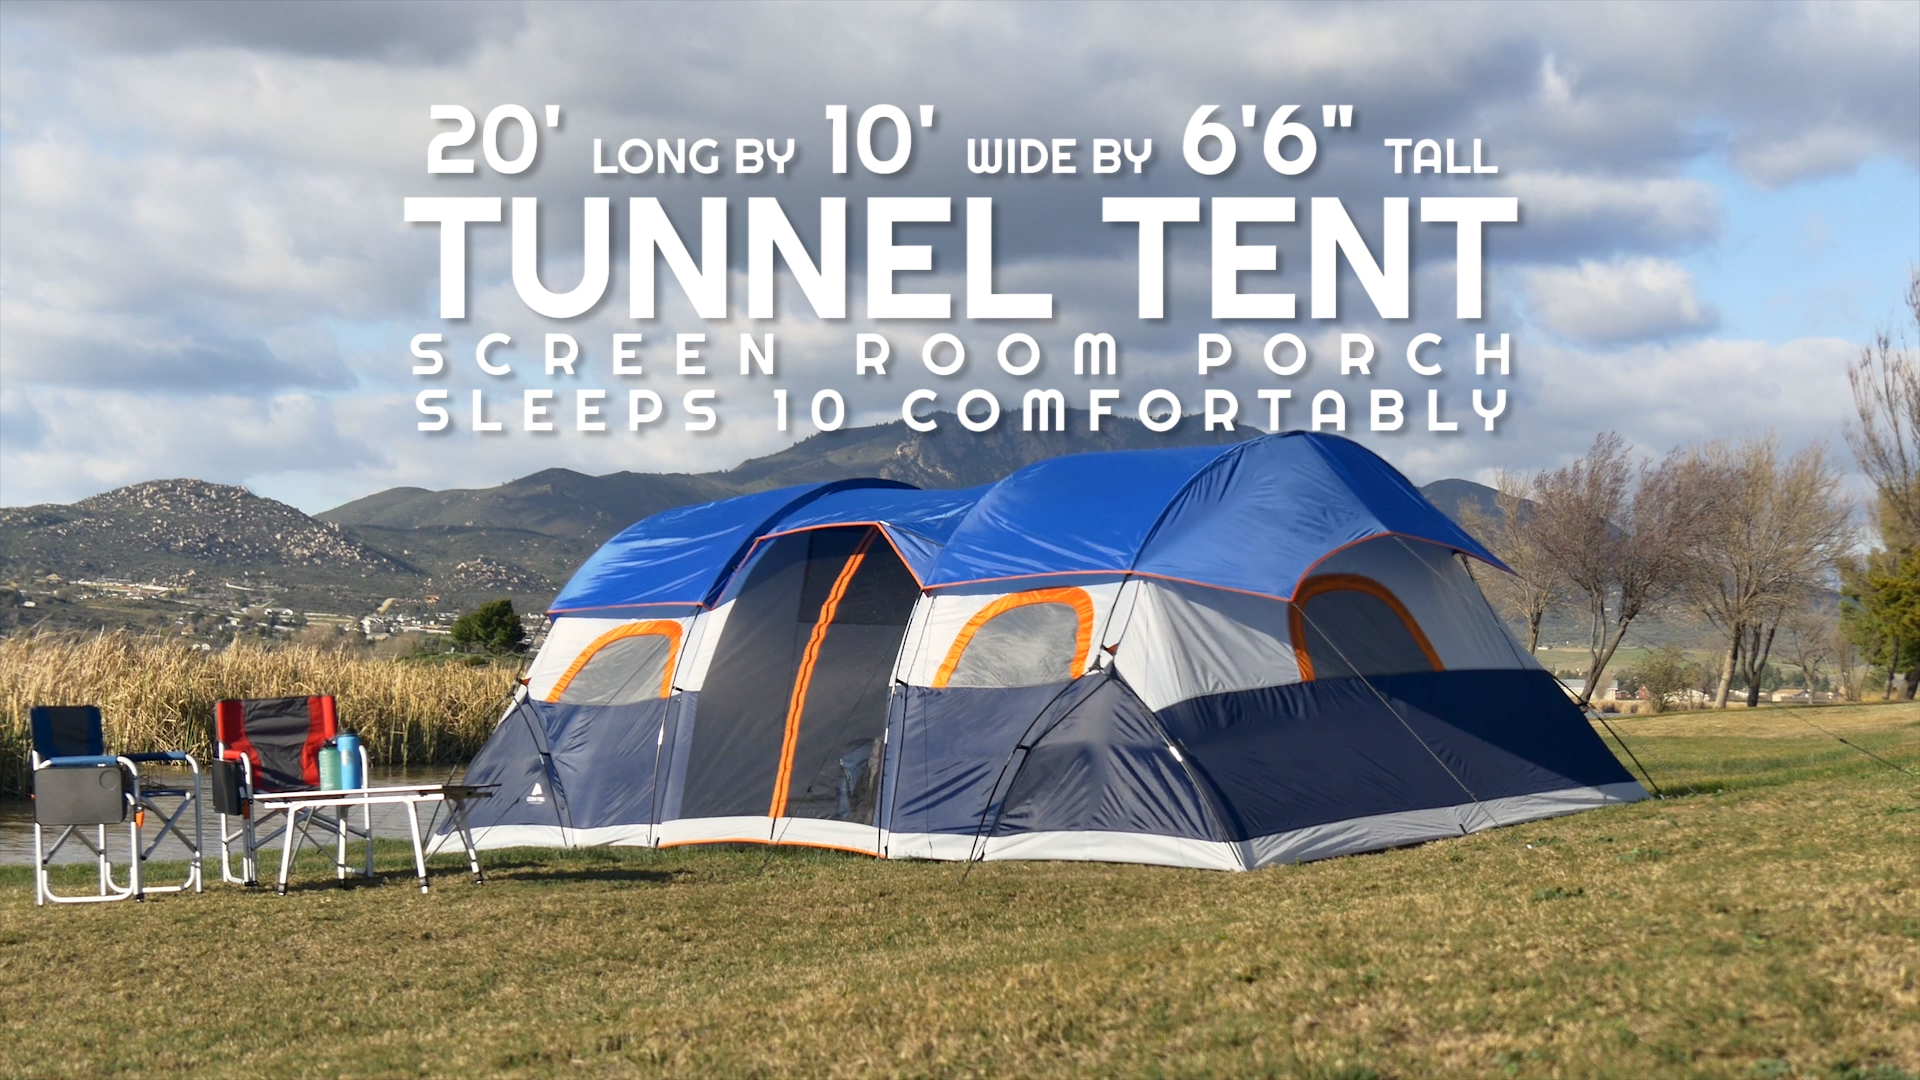 Ozark Trail 20u0027 x 10u0027 Tunnel Tent with Screen Porch Sleeps 10 Image  sc 1 st  Walmart & Ozark Trail 20u0027 x 10u0027 Tunnel Tent with Screen Porch Sleeps 10 ...